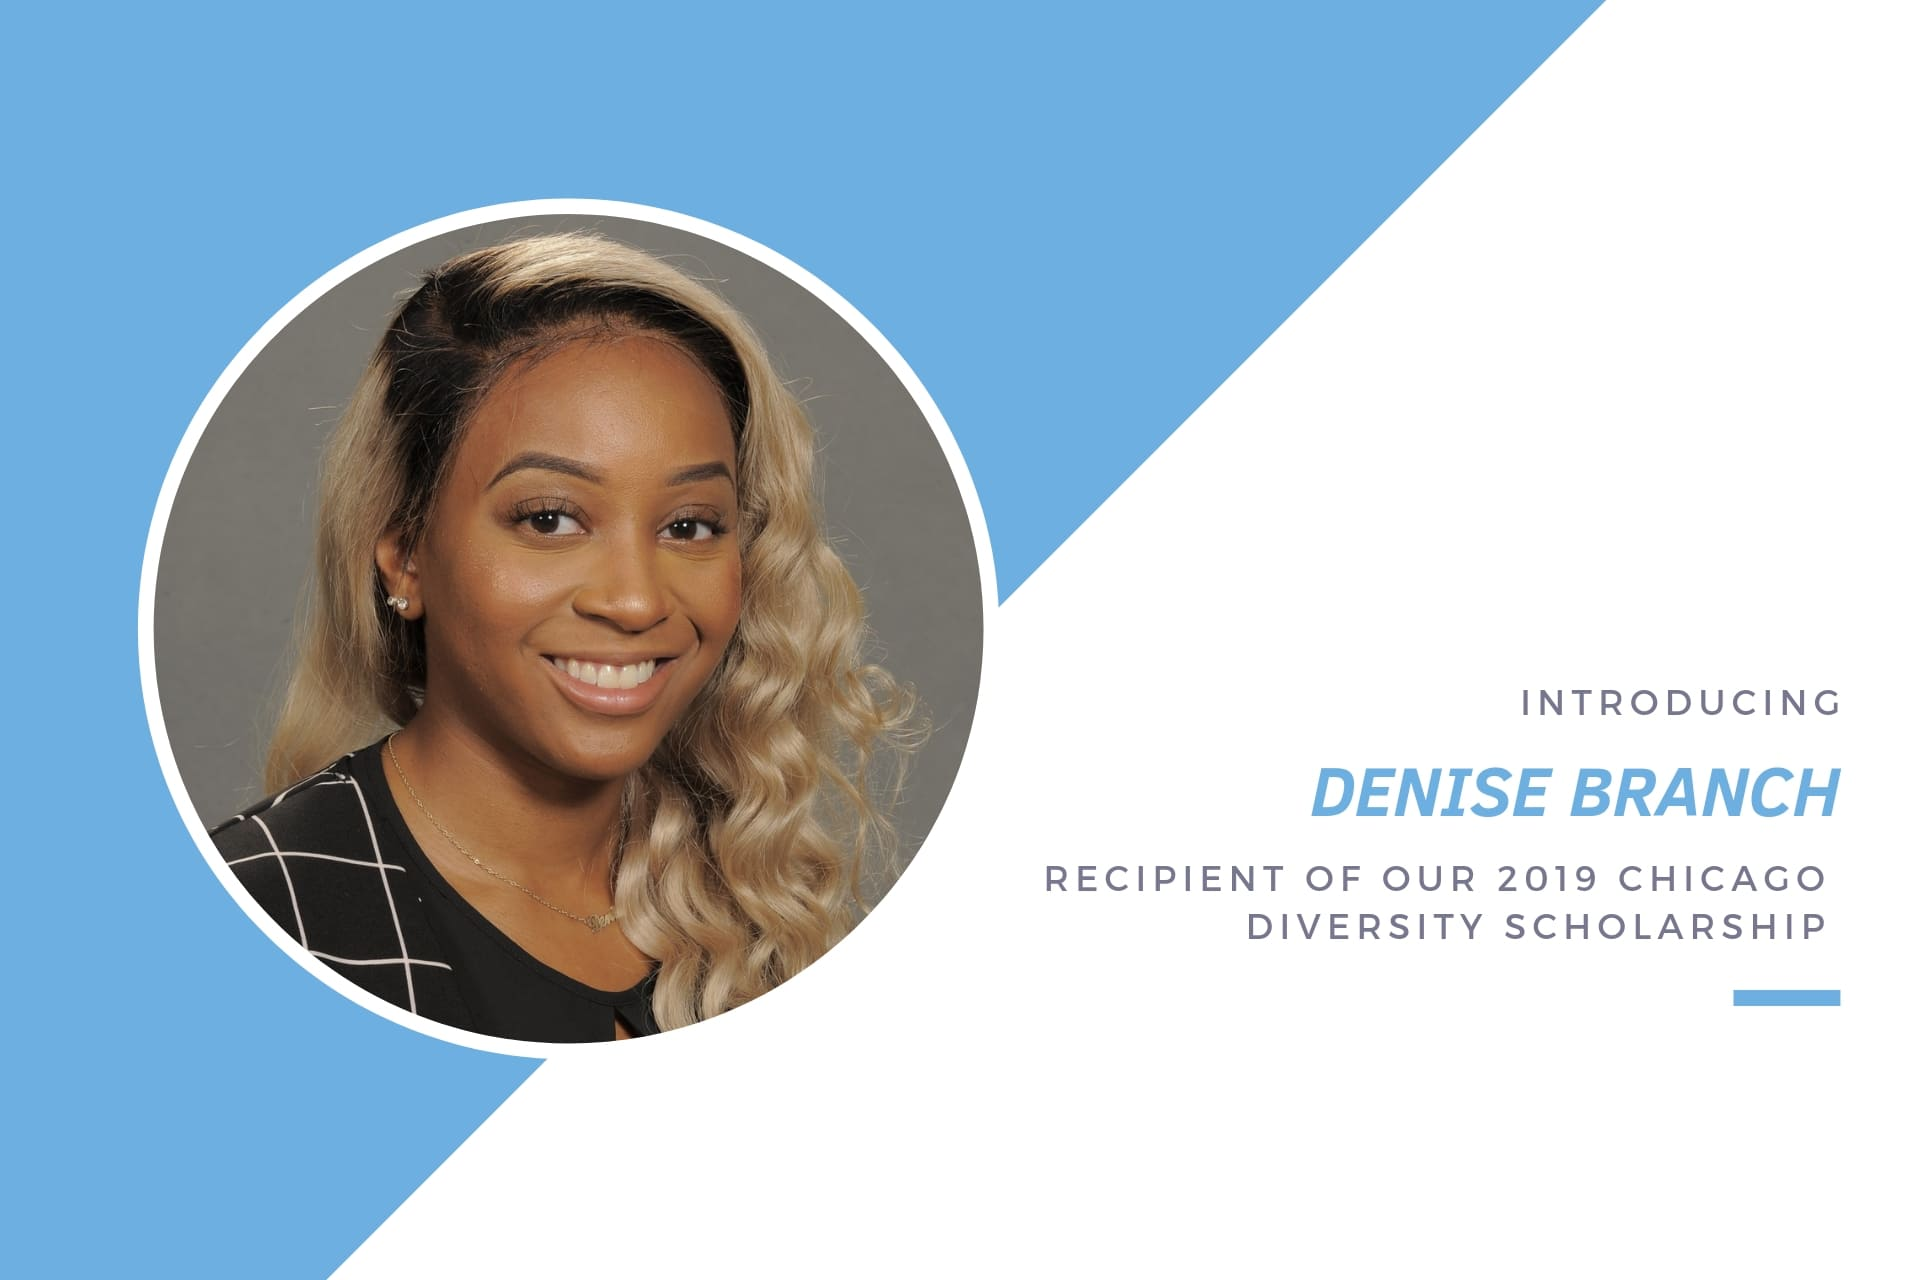 Denise Branch, Barnes & Thornburg diversity scholarship